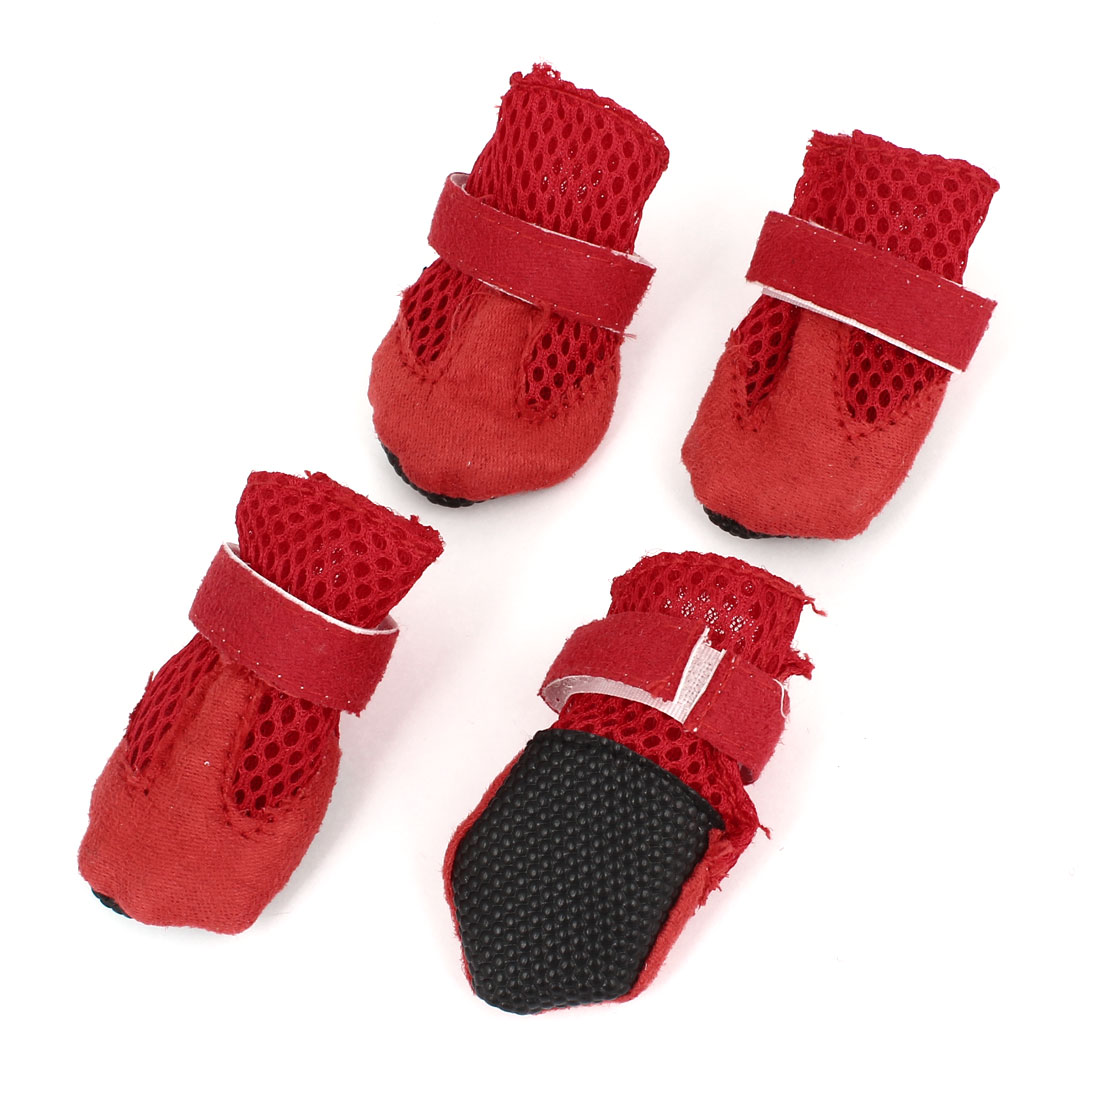 2 Pair Hook Loop Closure Pet Dog Mesh Shoes Boots Booties Red Size XXS